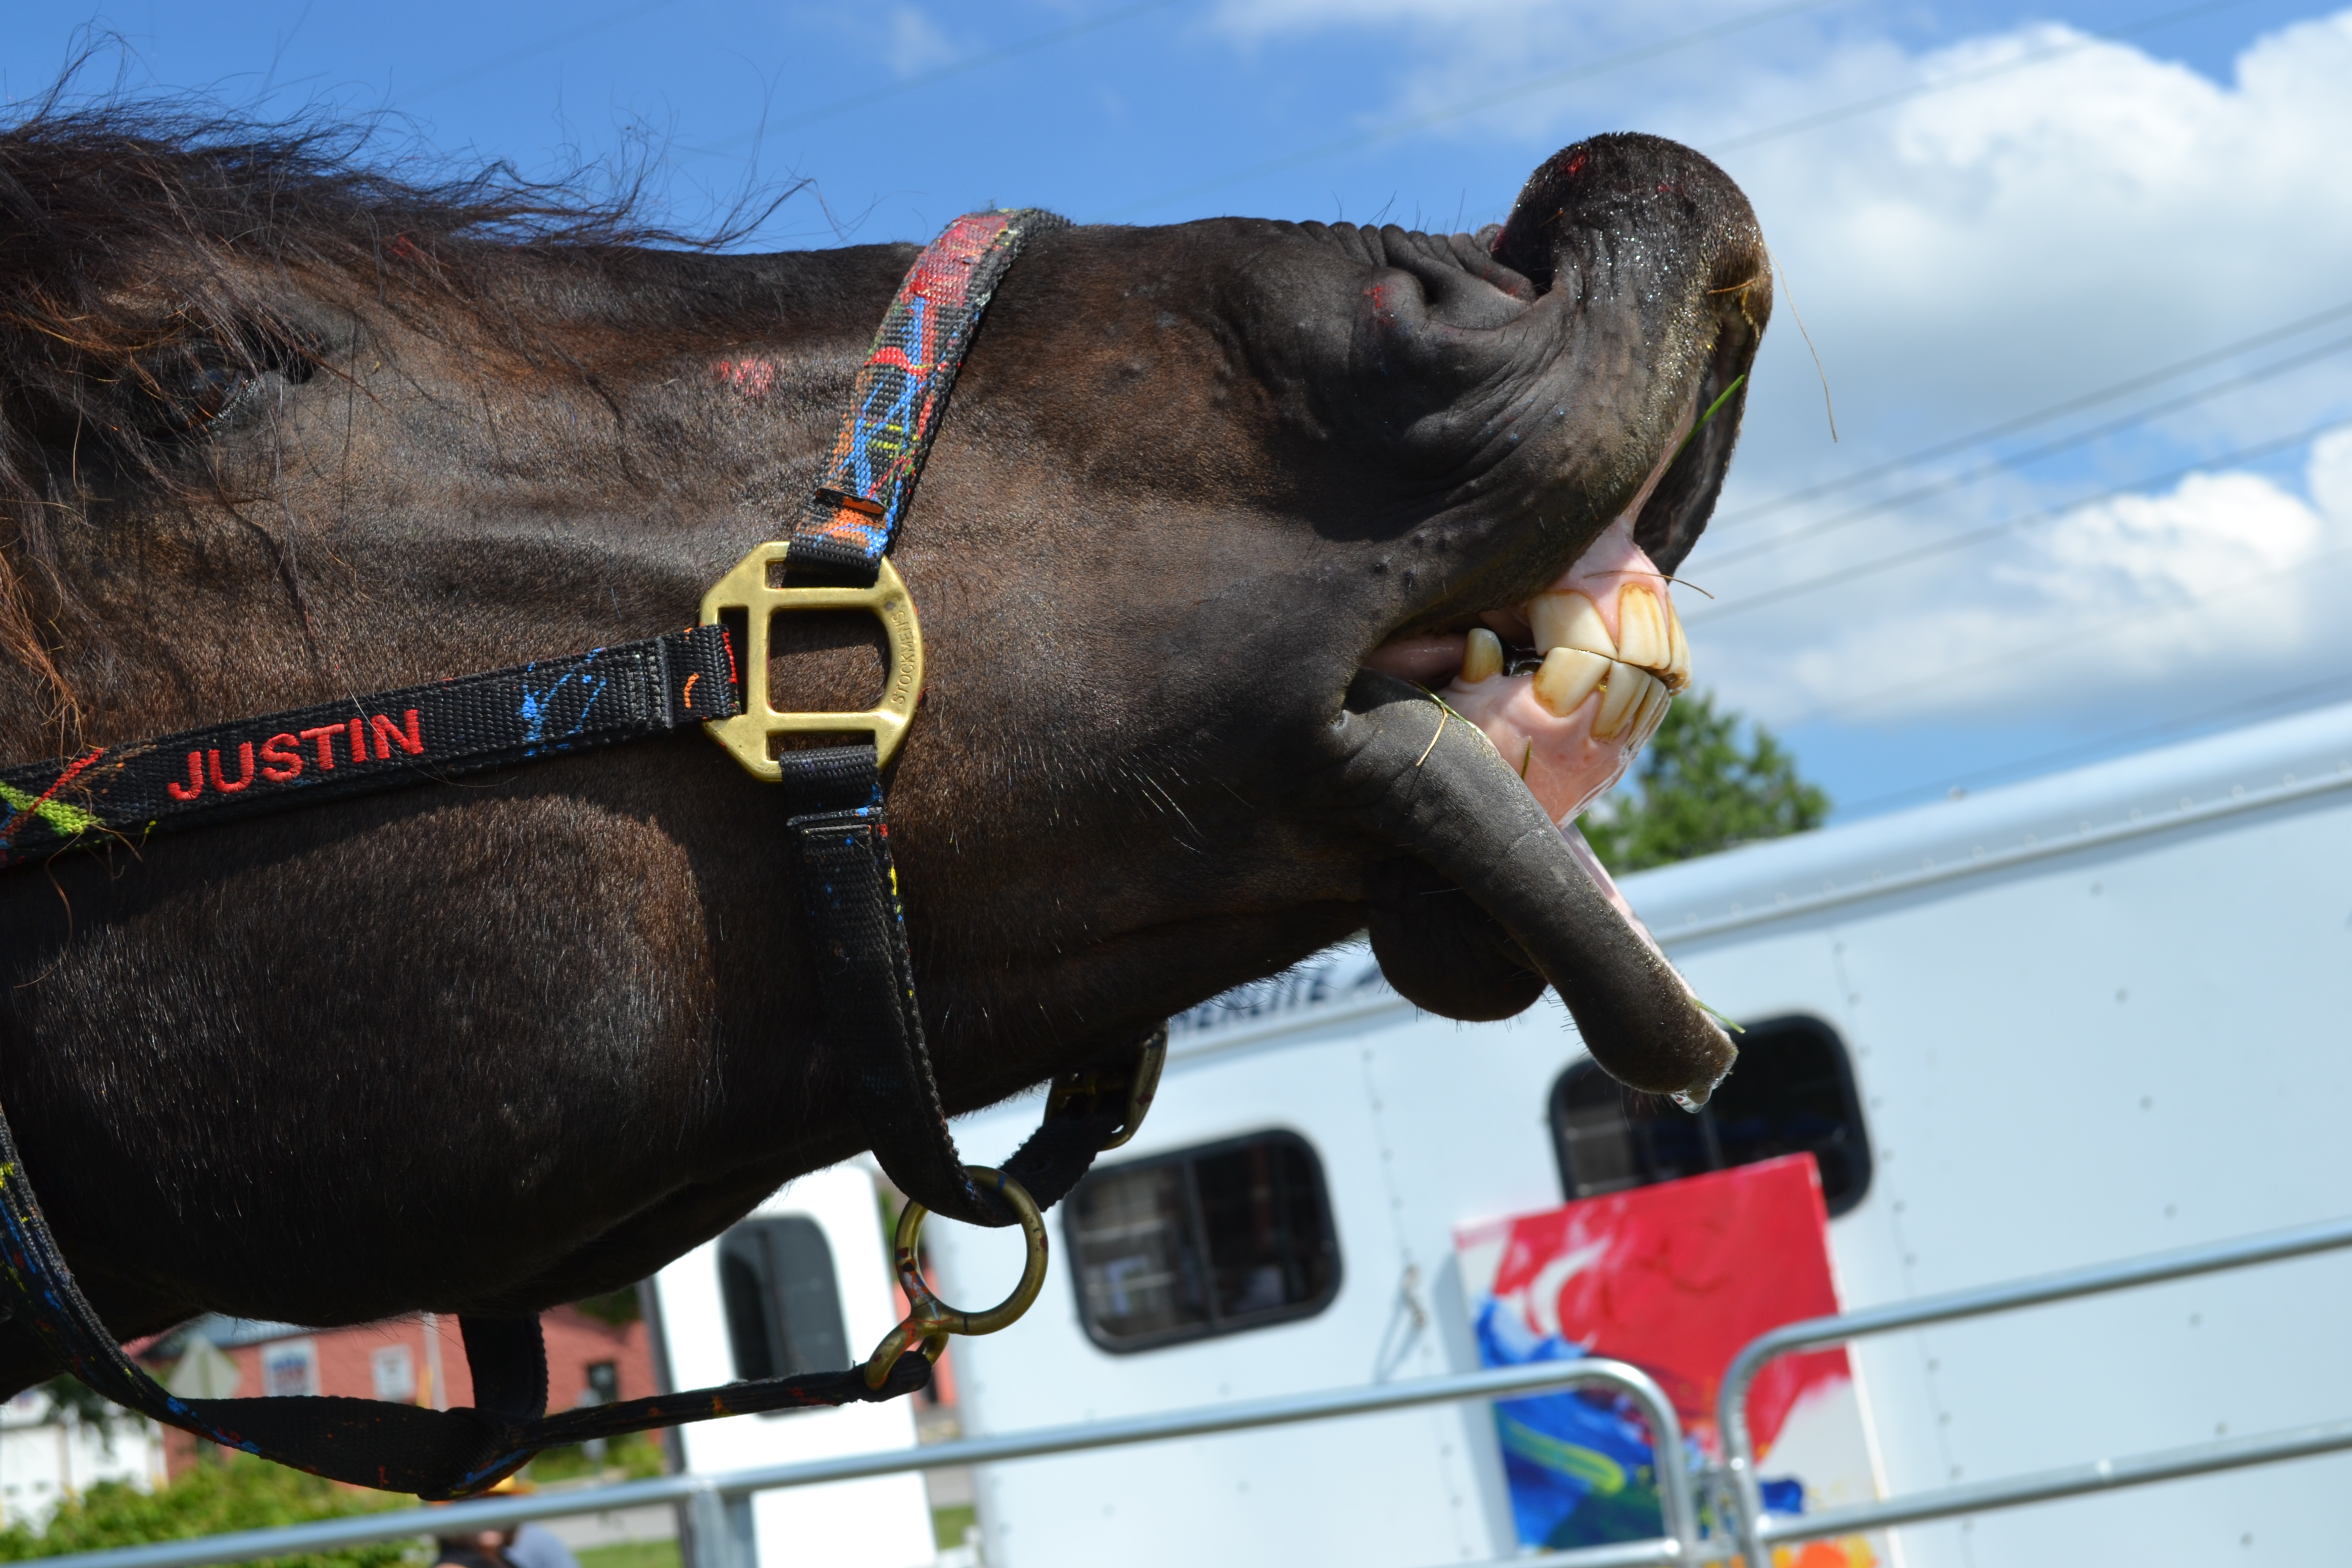 Don't Look a Gift Horse in the Mouth – Artistic Horses